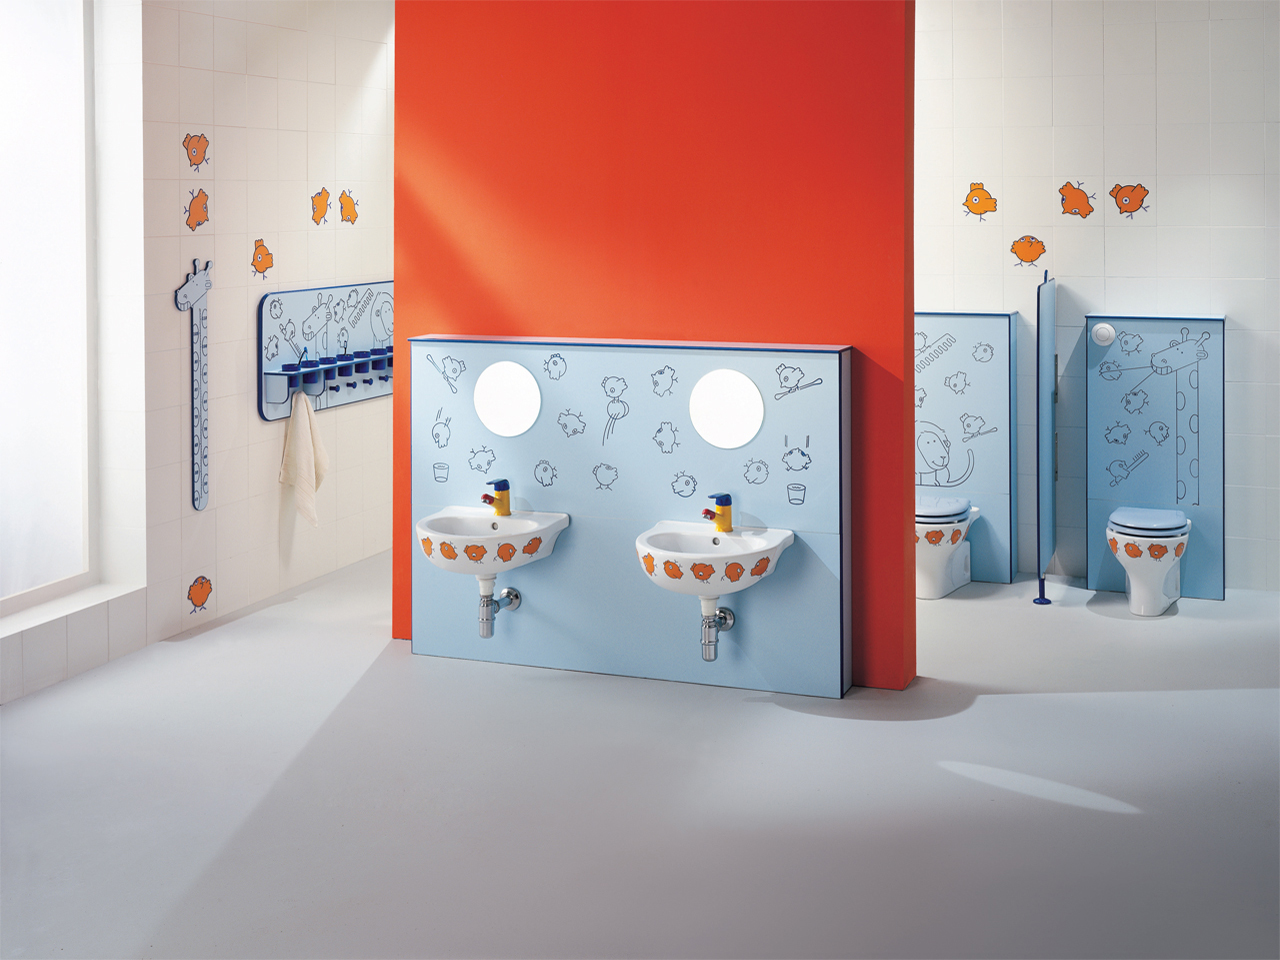 Birdo line solution for children bathroom environment